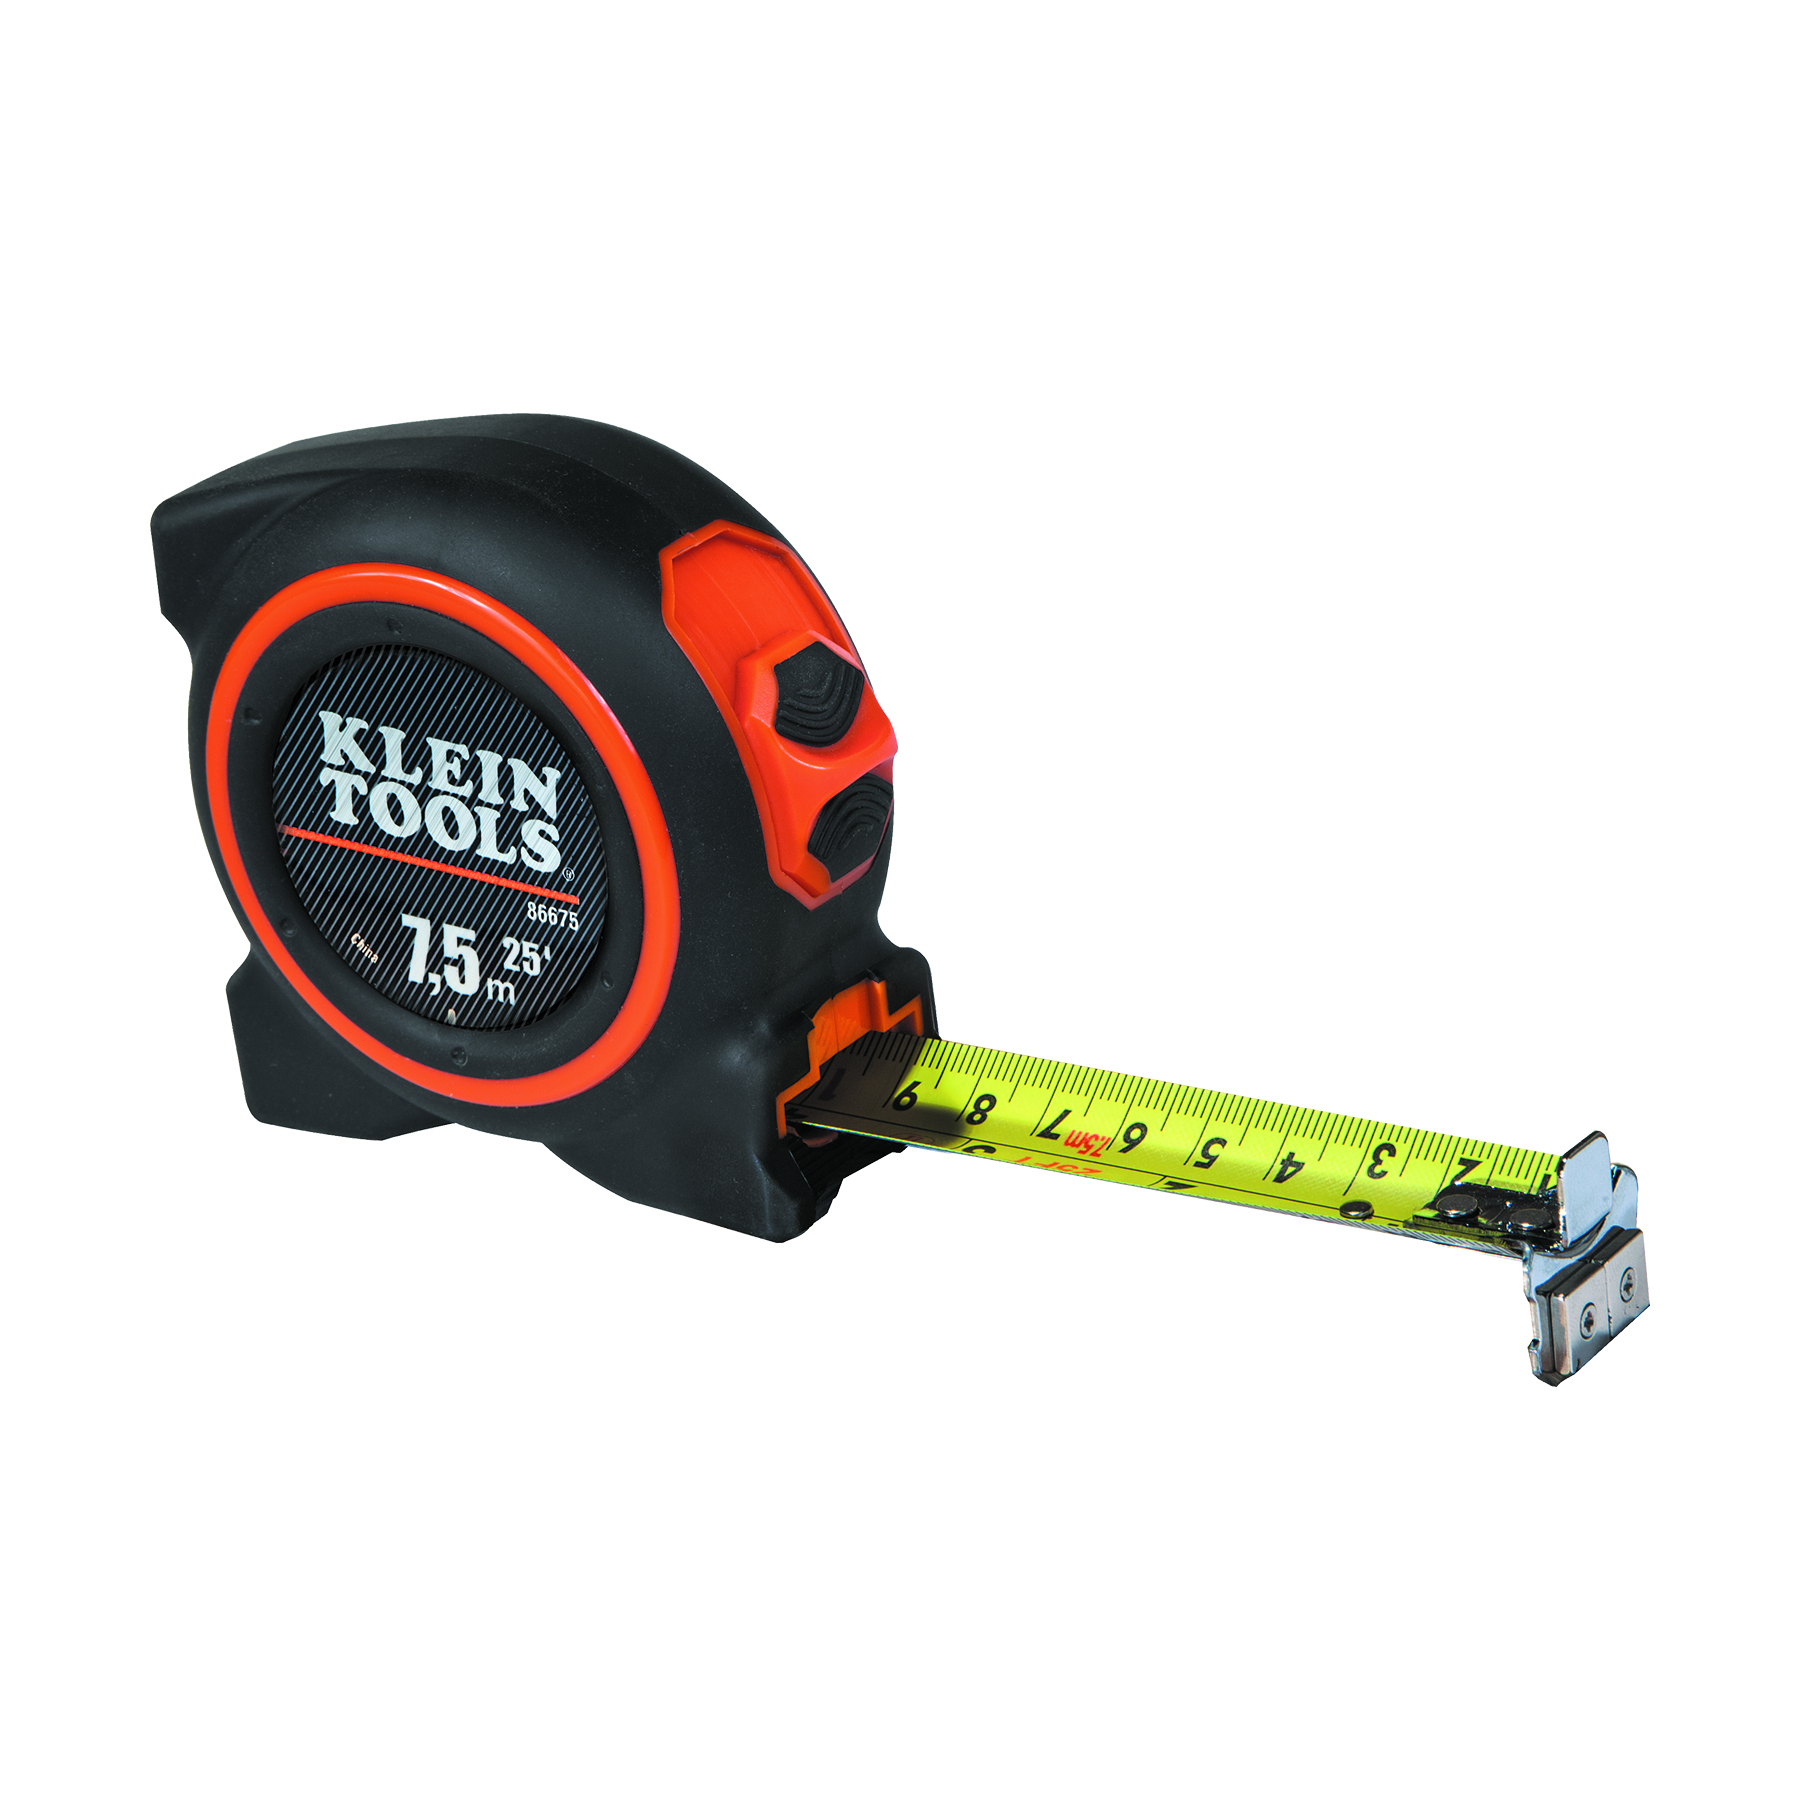 Tape Measure 7 5 M Magnetic Double Hook 86675 Klein